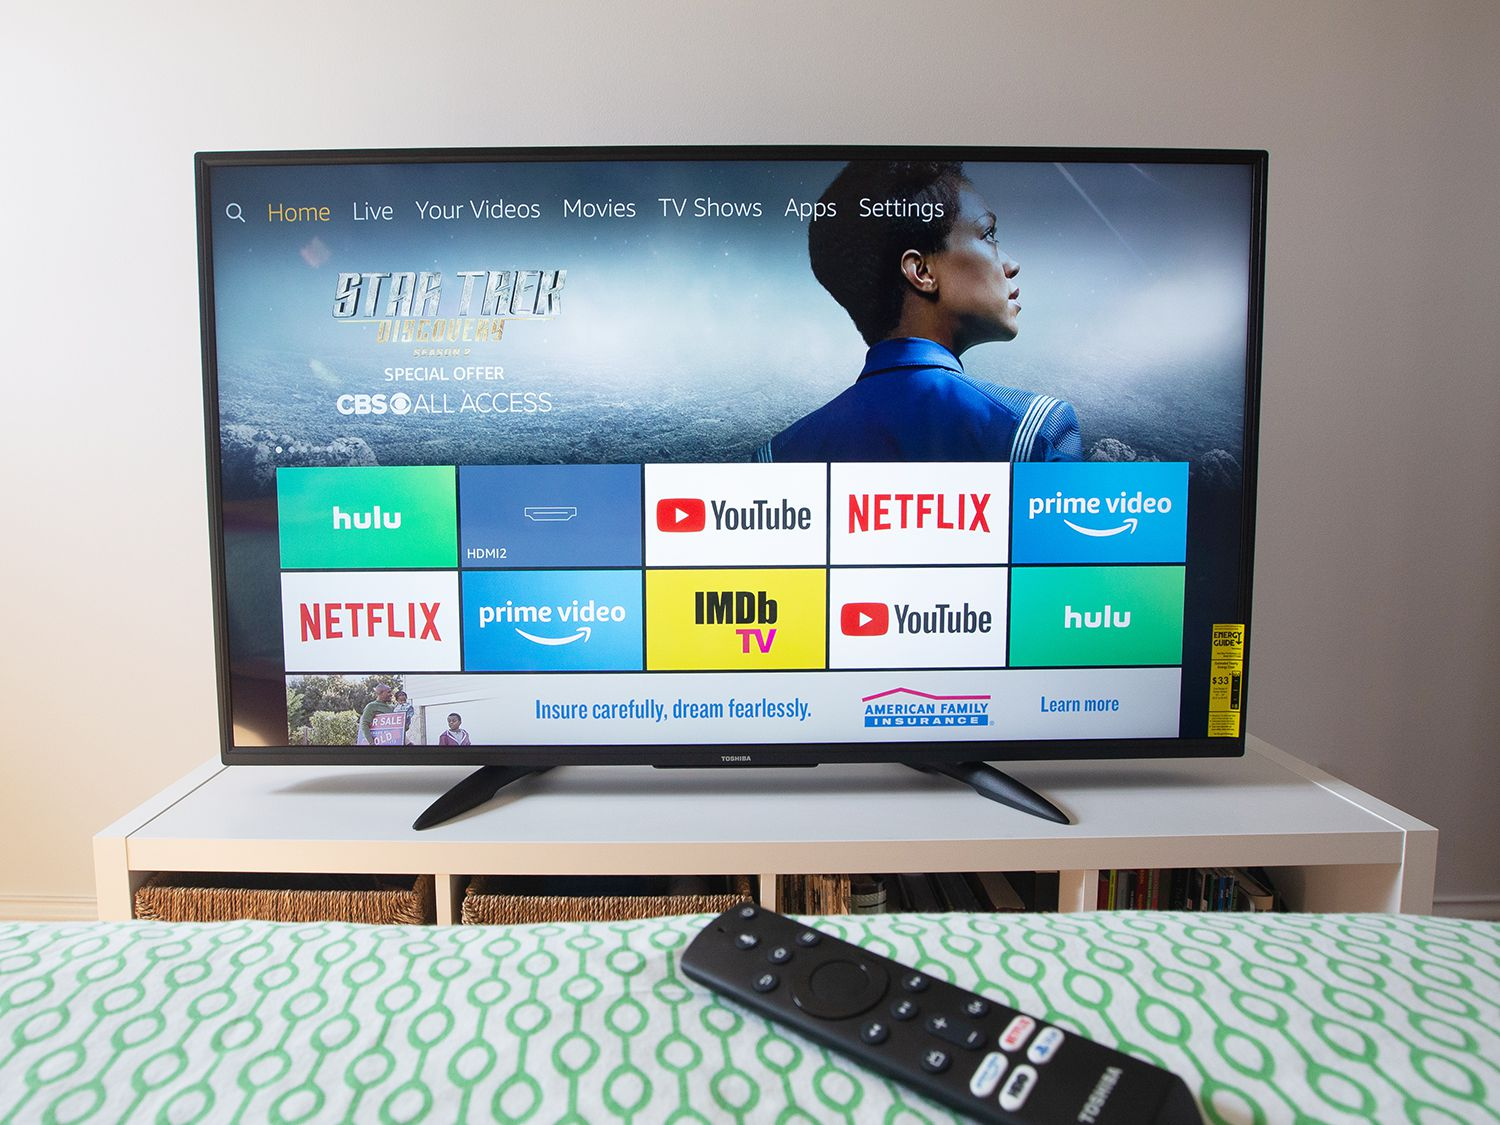 Toshiba 55lf711u20 55 Inch Fire Tv Edition Review Ideal For Amazon Prime Members